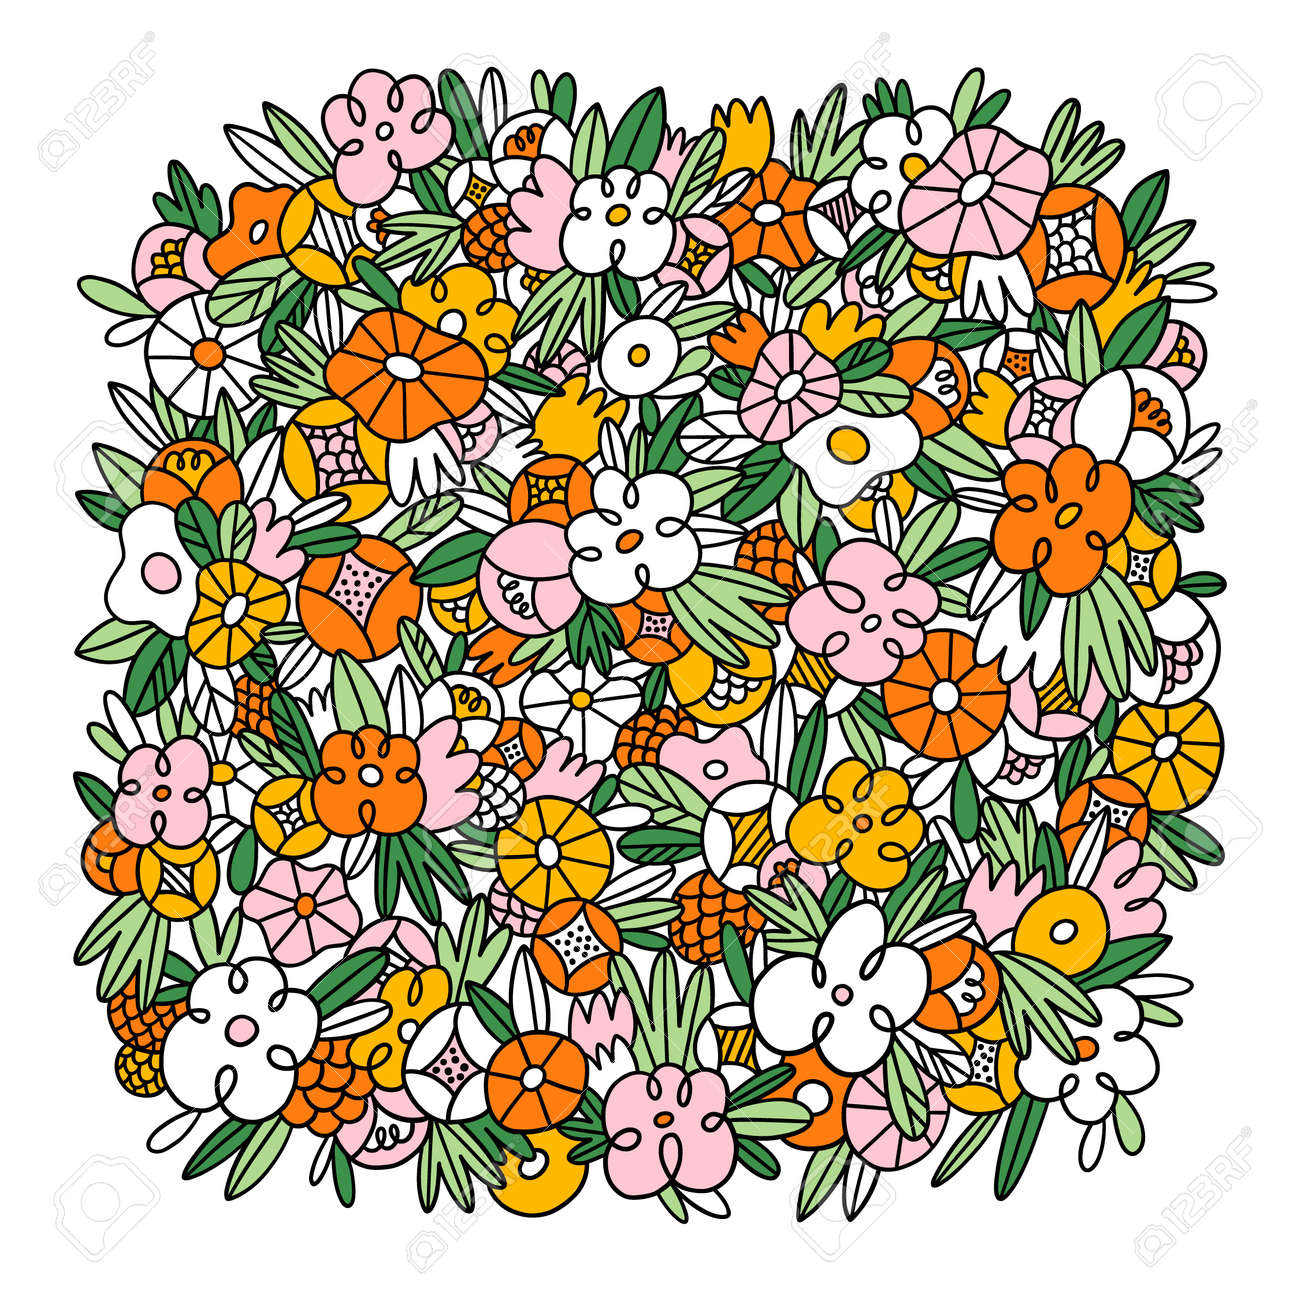 Wild flowers and grass vector square background template, crazy colorful floral doodles, isolated on white background - 166872876